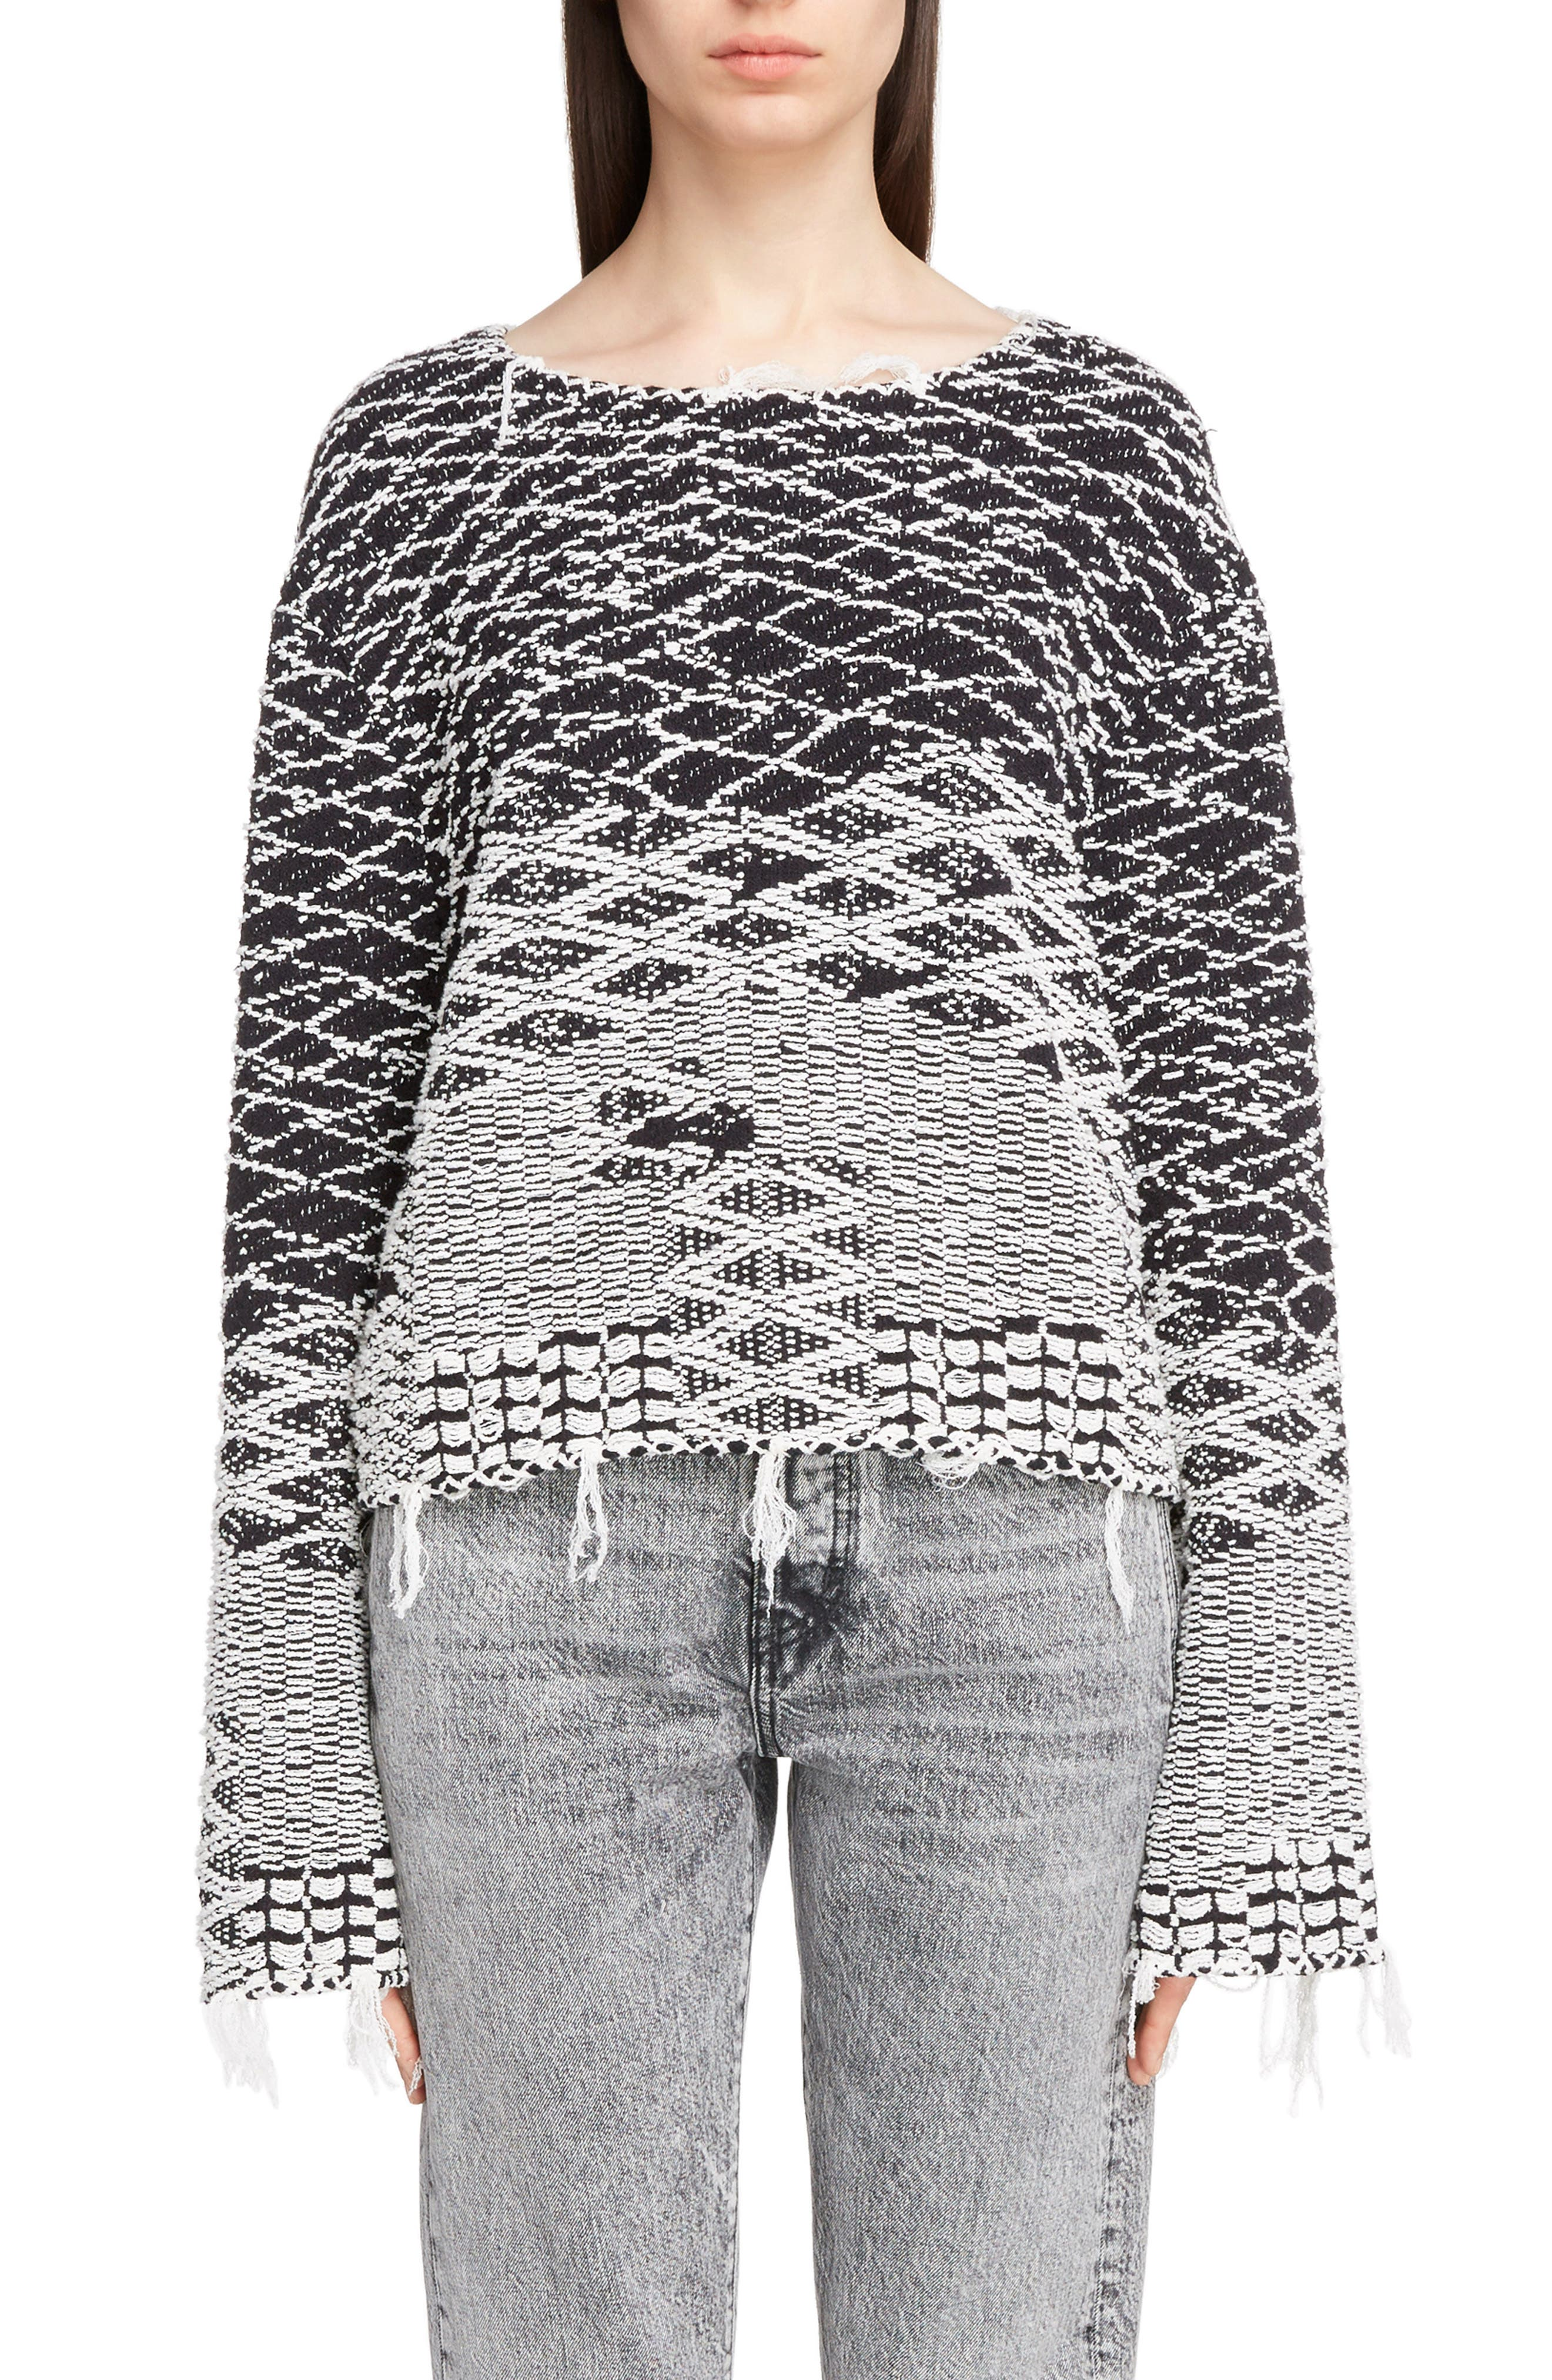 Saint Laurent Fringe Jacquard Sweater